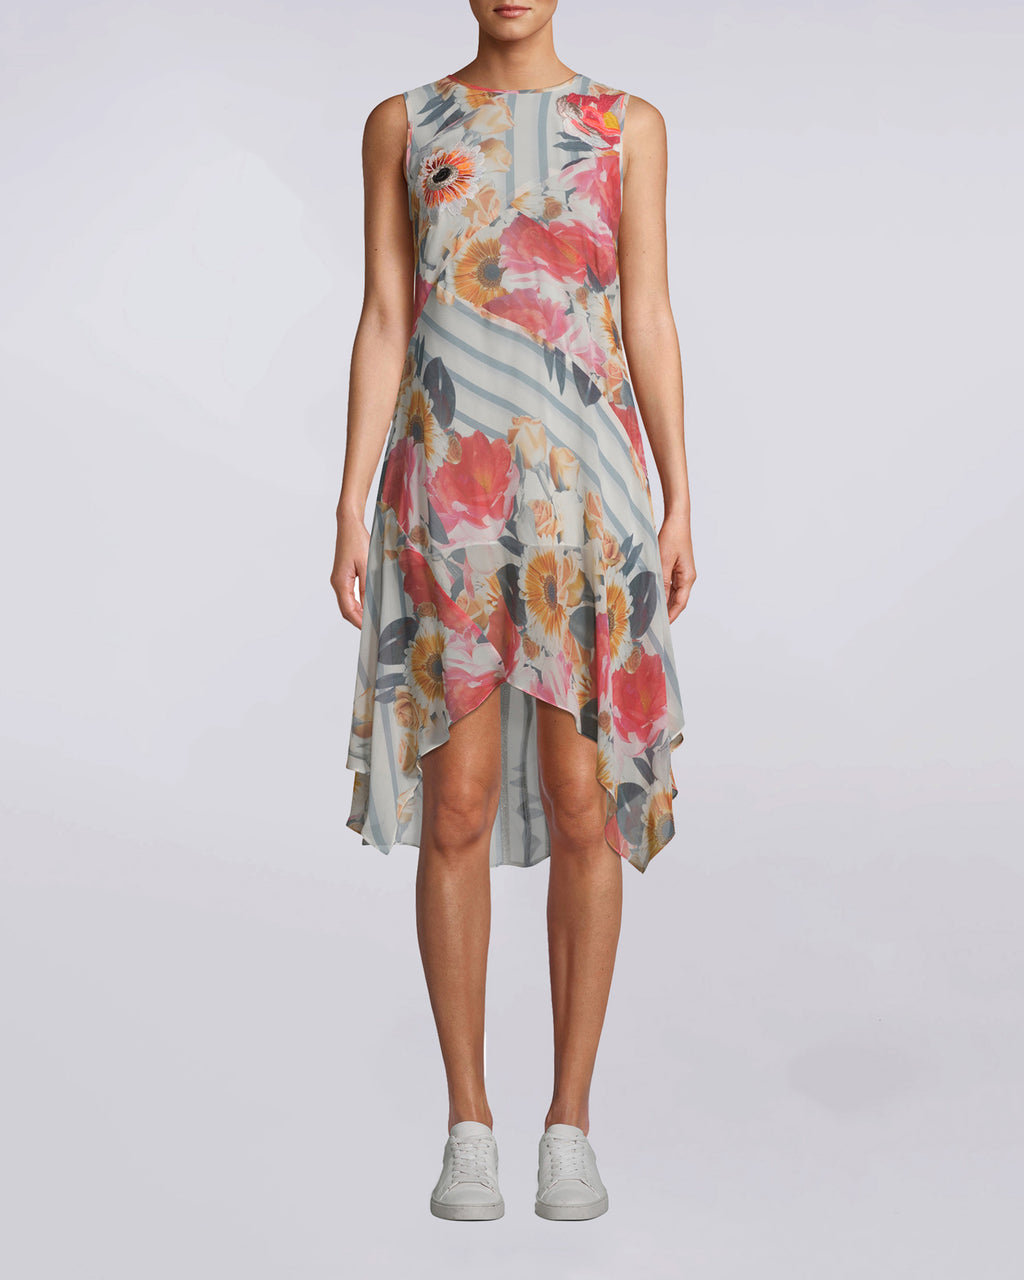 CS10007 - Embroidered Floral Stripe Handkerchief Dress - dresses - short - Optimum for any summer situation. Flowery and feminine, this embroidered dress has a comfortable, flowy fit while still delivering chic. Attached slip, exposed back zipper.